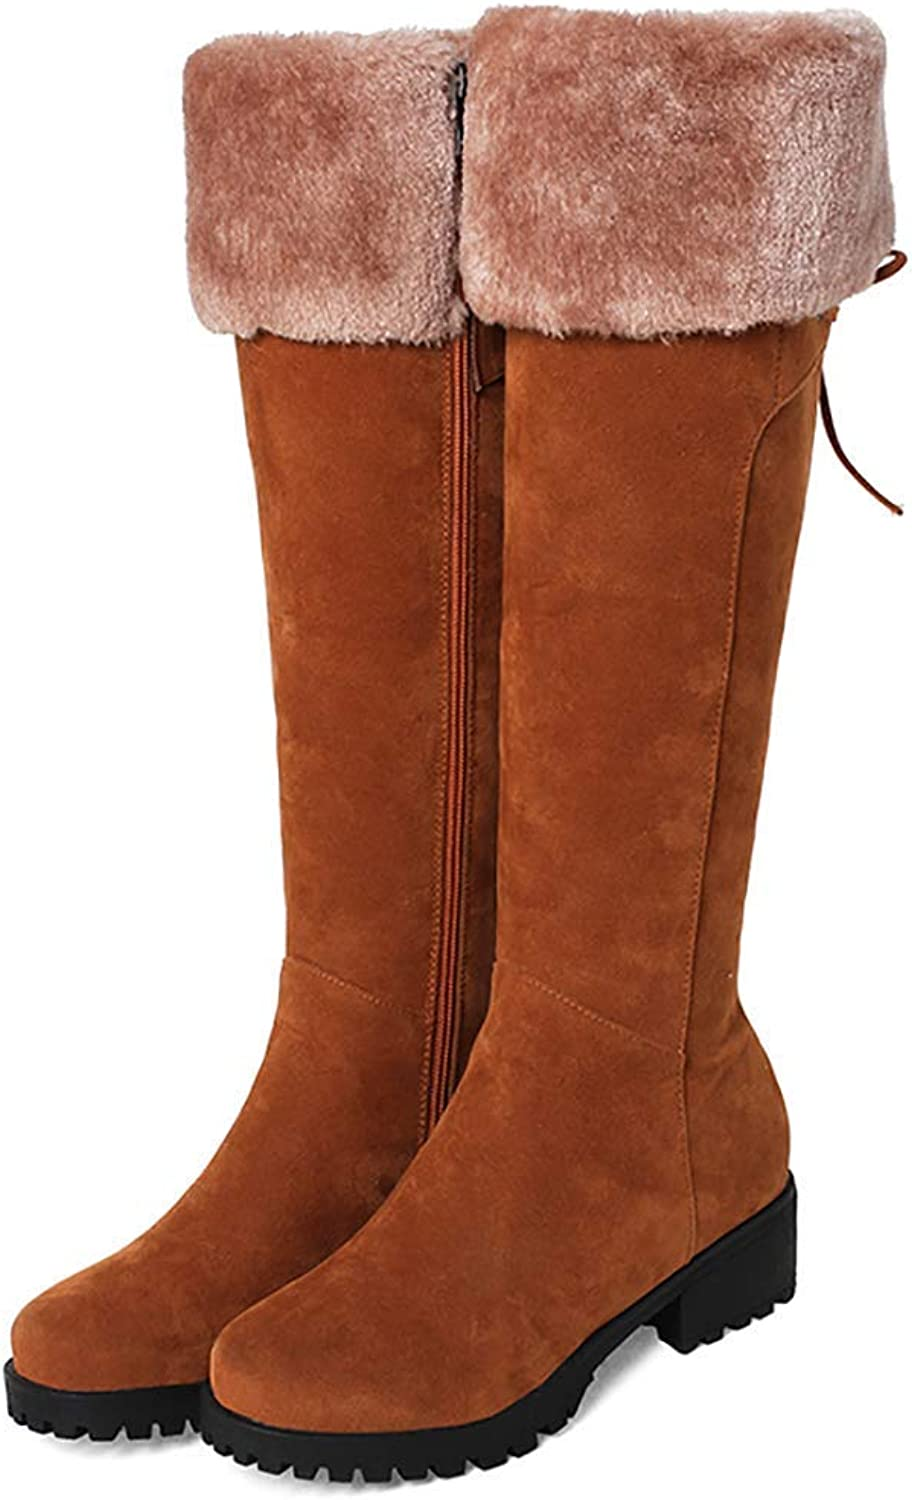 Womens Knee High Boots Chunky Low Heel Zipper Lace up Winter Faux Fur Suede Boots(0 0)